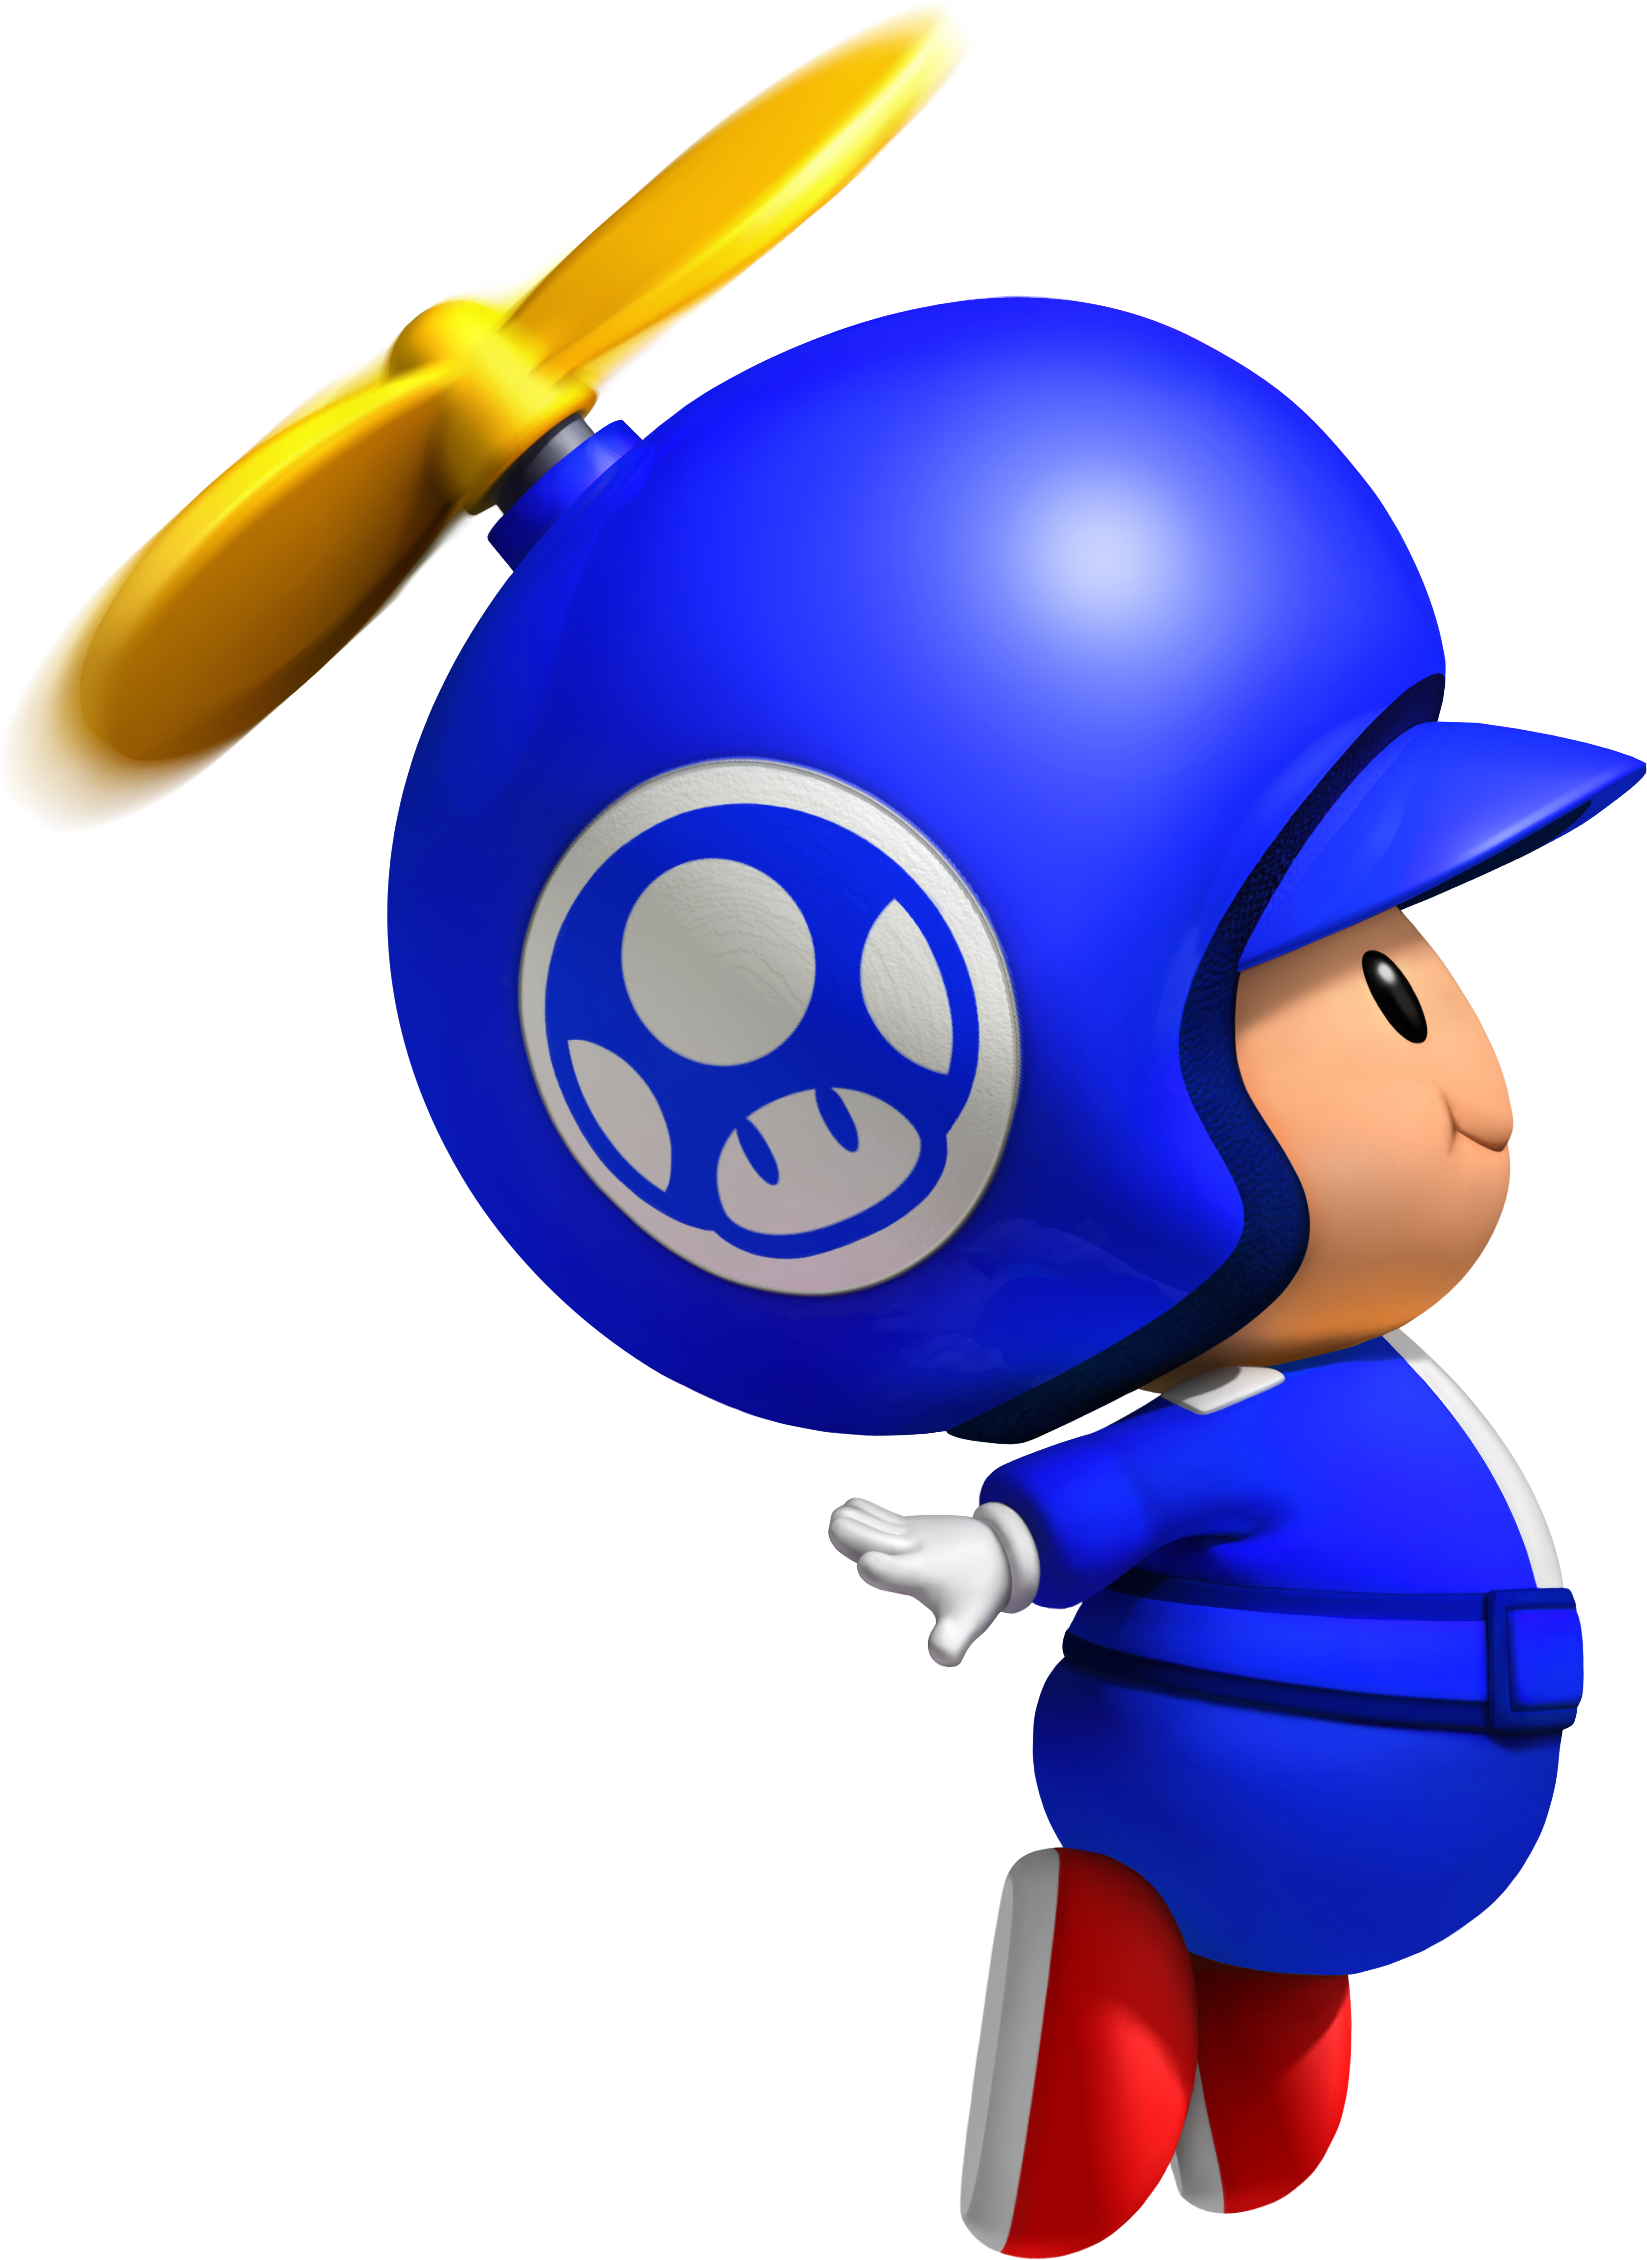 Blue propeller pinterest and. Toad clipart magic spell